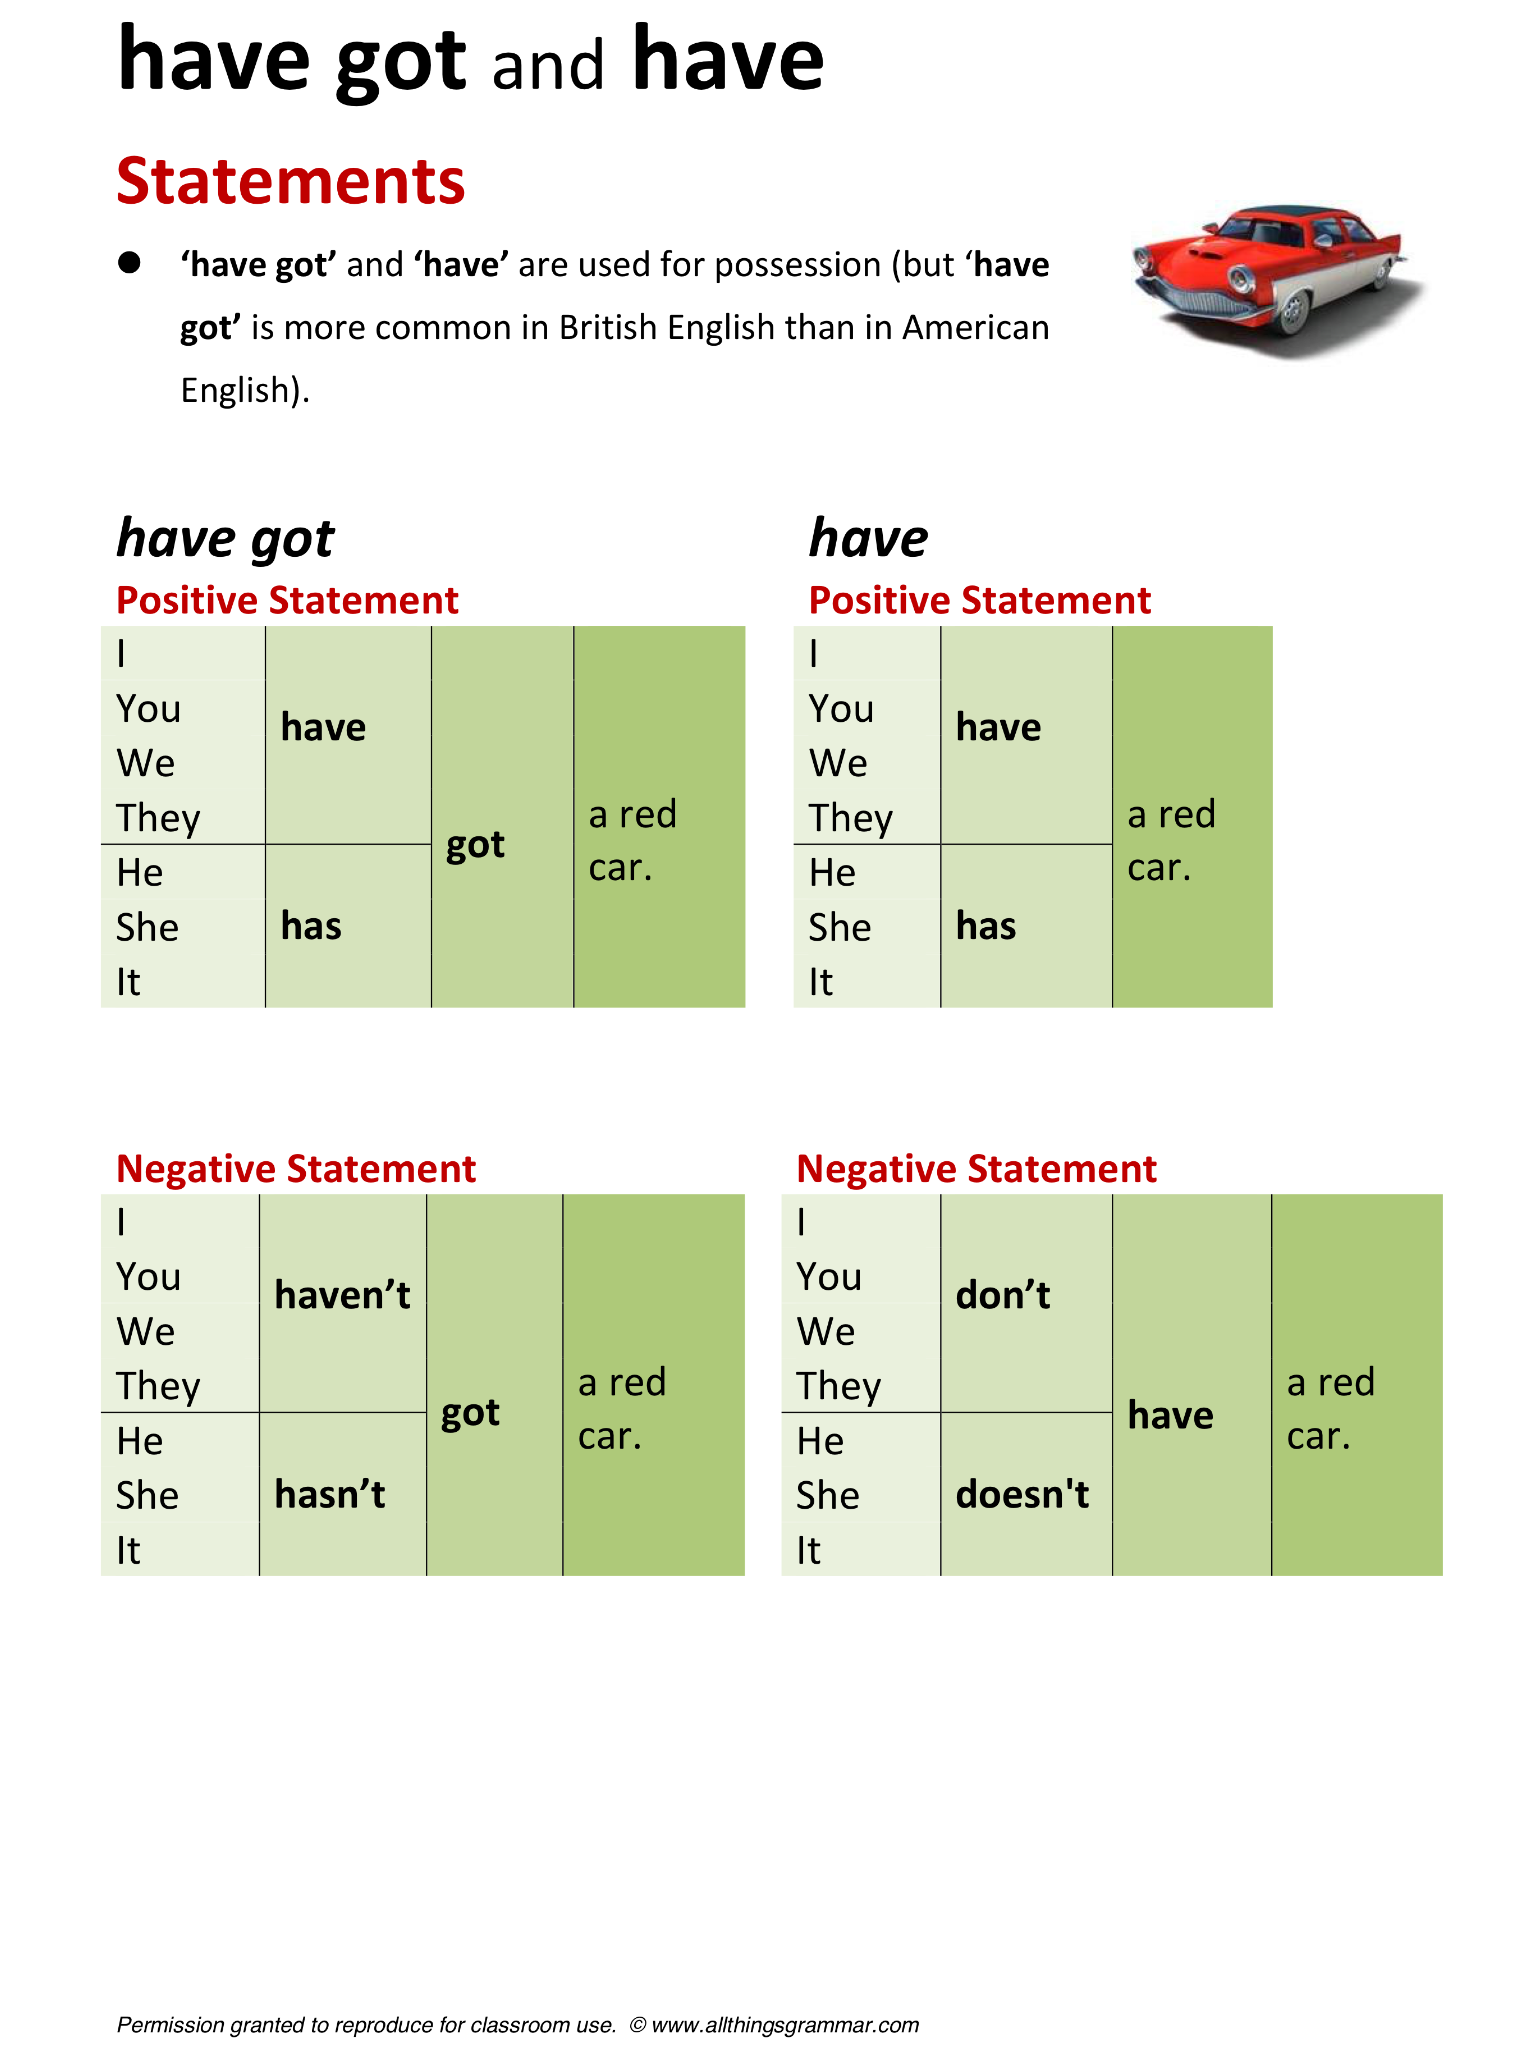 English Grammar Have Got And Have Statements